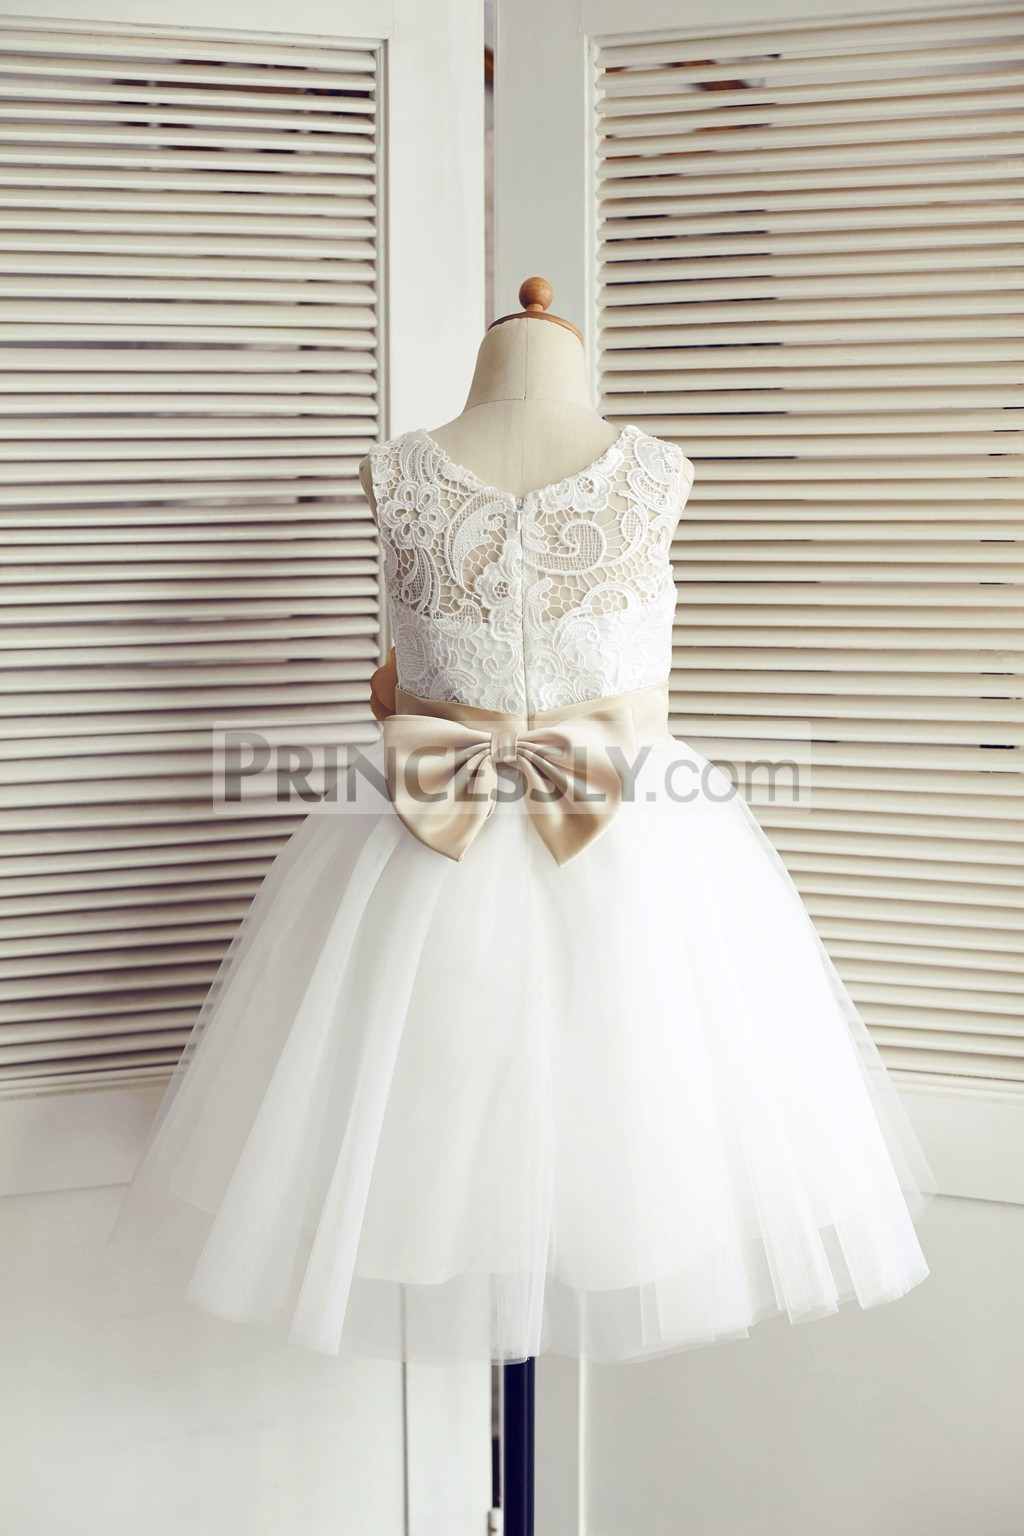 Lace Tulle wedding flower girl dress with champagne belt & bow